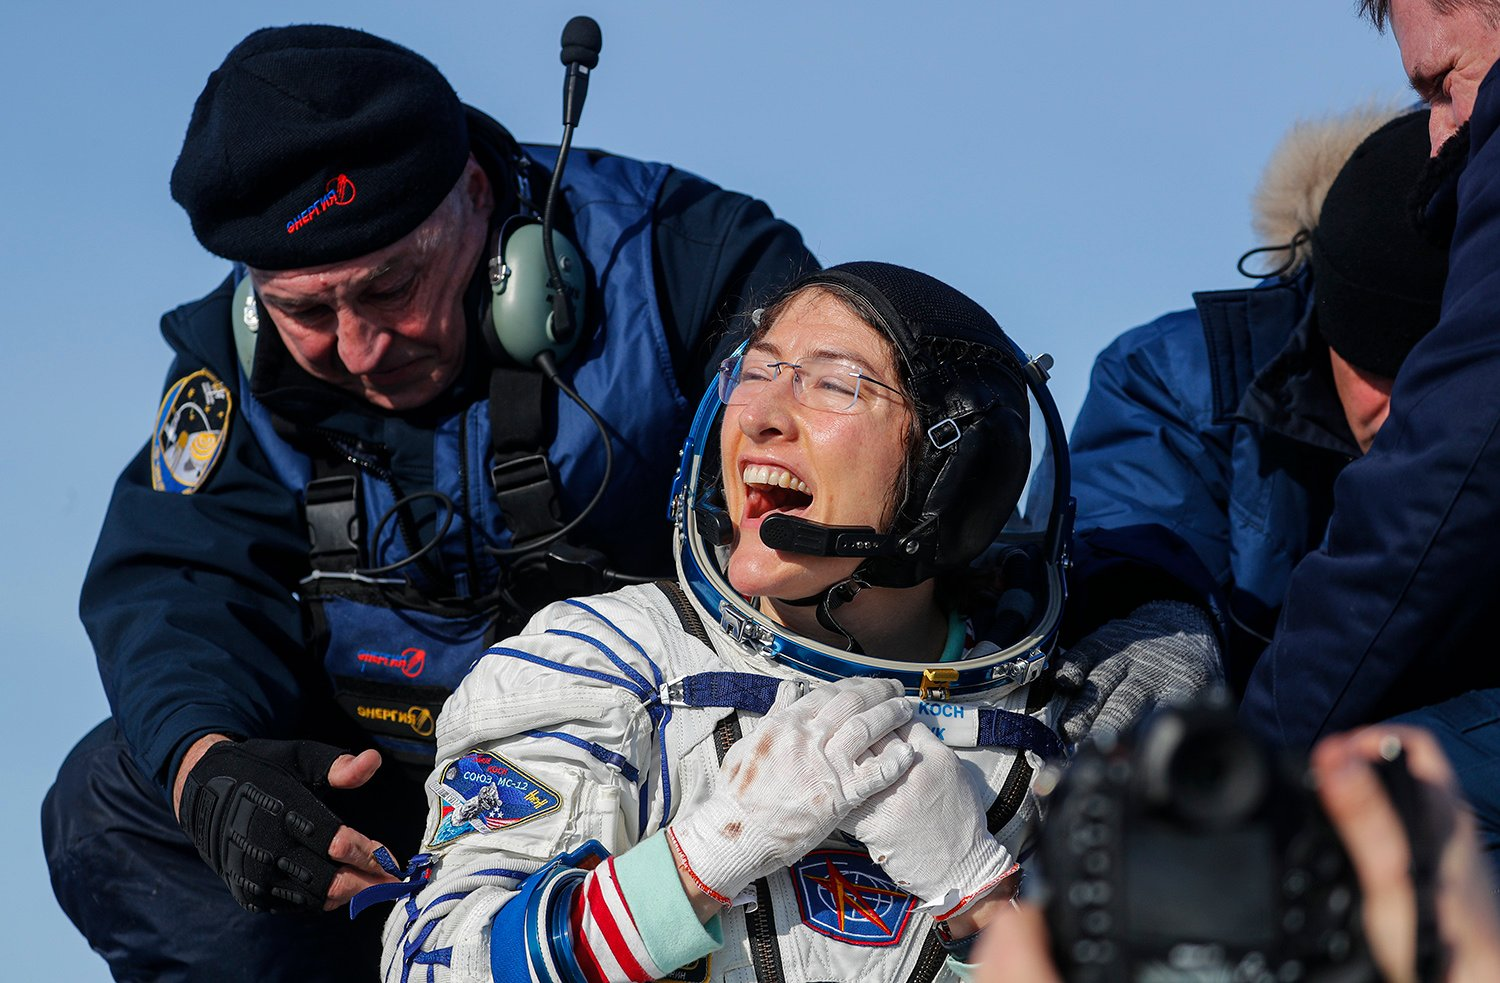 NASA astronaut Christina Koch reacts shortly after landing in a remote area outside the town of Dzhezkazgan (Zhezkazgan), Kazakhstan, on February 6, 2020. (Credit: SERGEI ILNITSKY/POOL/AFP via Getty Images)